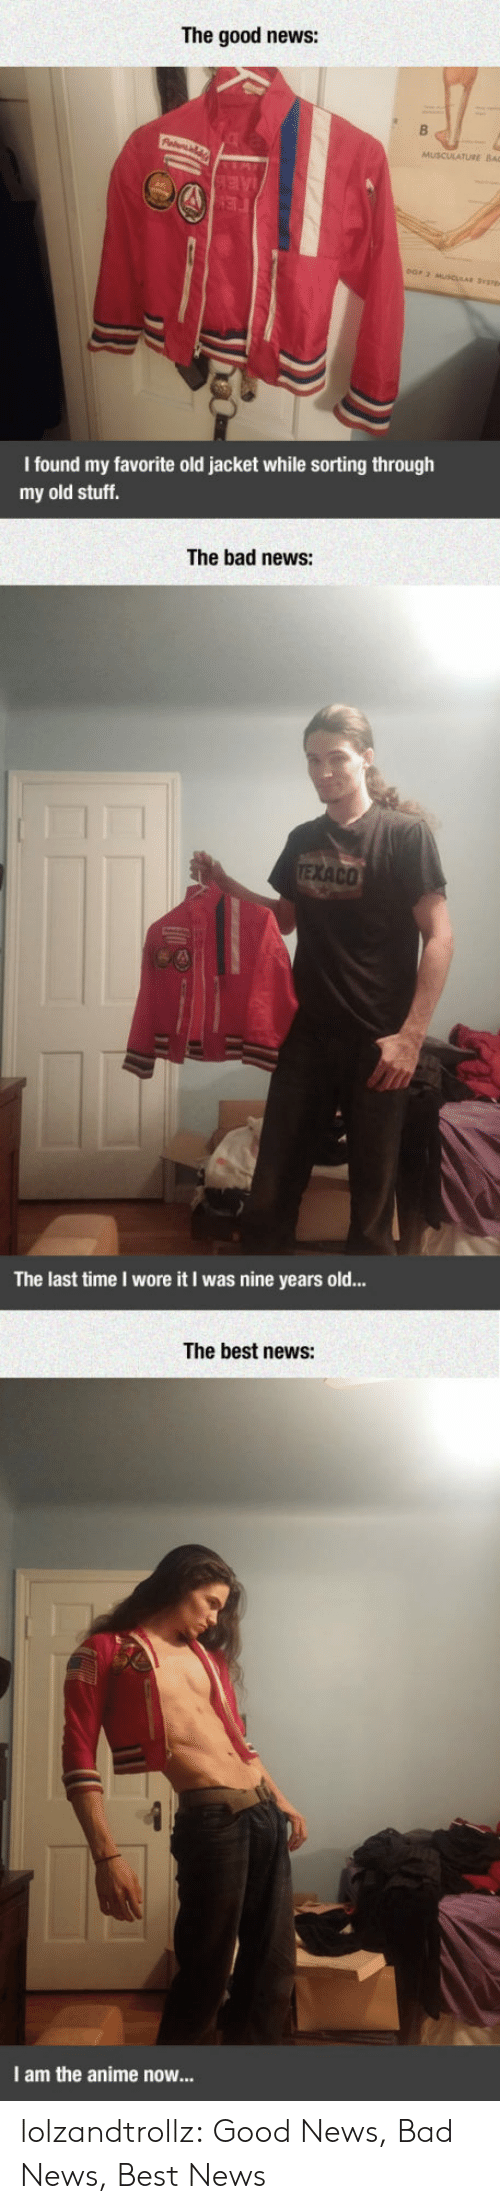 Anime, Bad, and News: The good news:  AE  FE  eOr 2 MUSCULAR SYt  I found my favorite old jacket while sorting through  my old stuff.  The bad news:  TEXACO  The last time I wore it I was nine years old...  The best news:  I am the anime now... lolzandtrollz:  Good News, Bad News, Best News